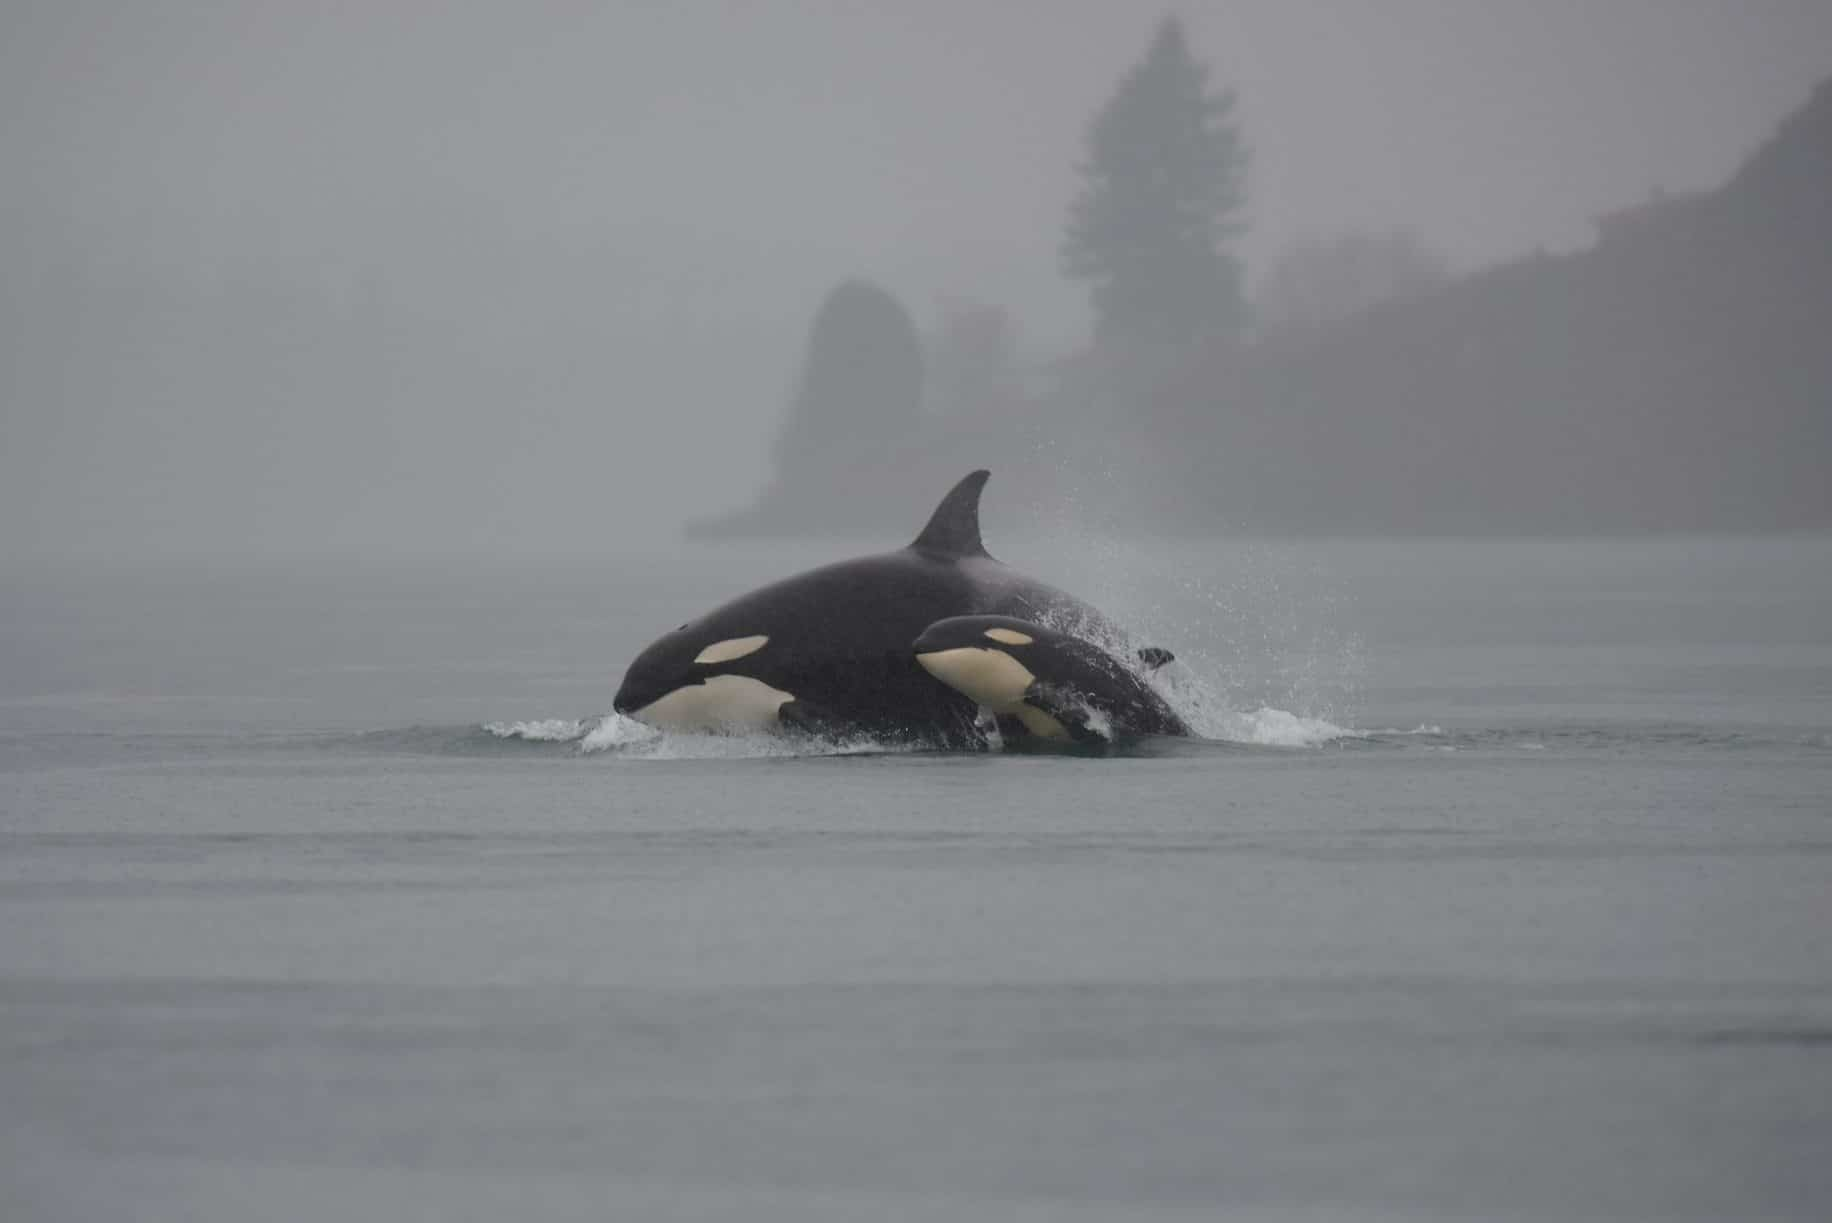 U.S. Navy, state leaders at odds over proposal that could affect Washington's orcas